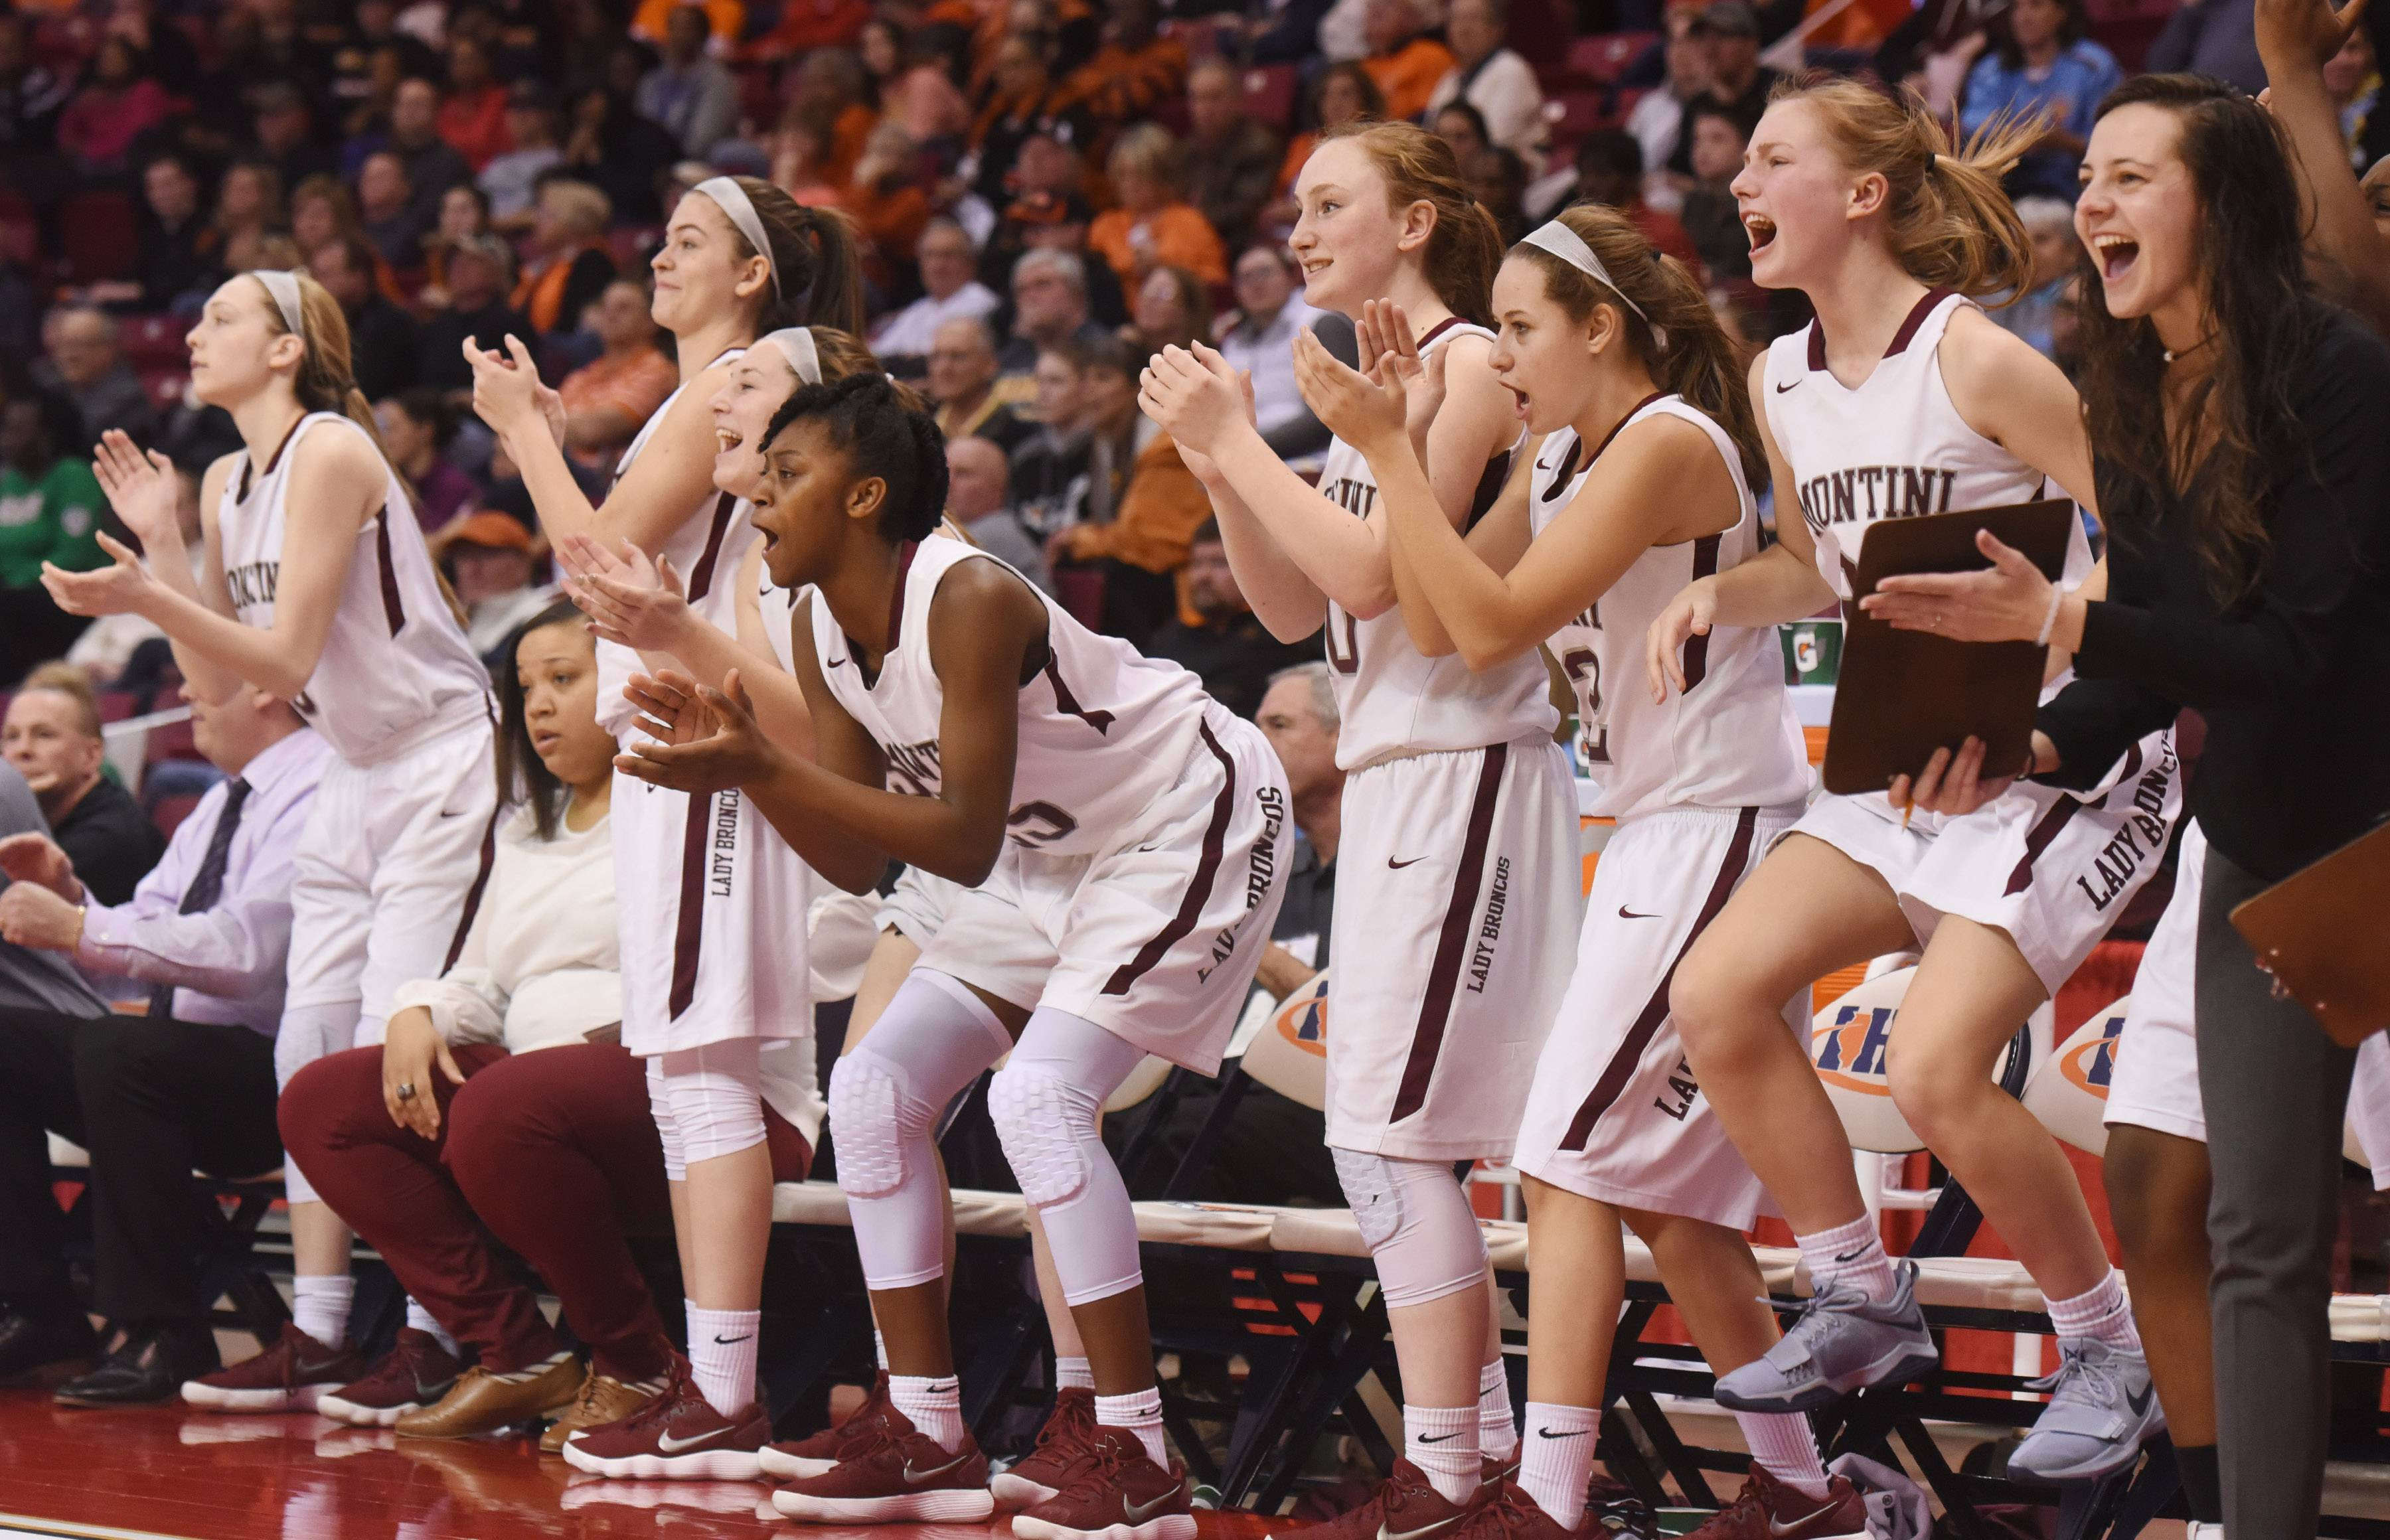 Players on the Montini bench celebrate a basket by their team during the Class 4A girls basketball semfinal against Edwardsville at Redbird Arena in Normal Friday.